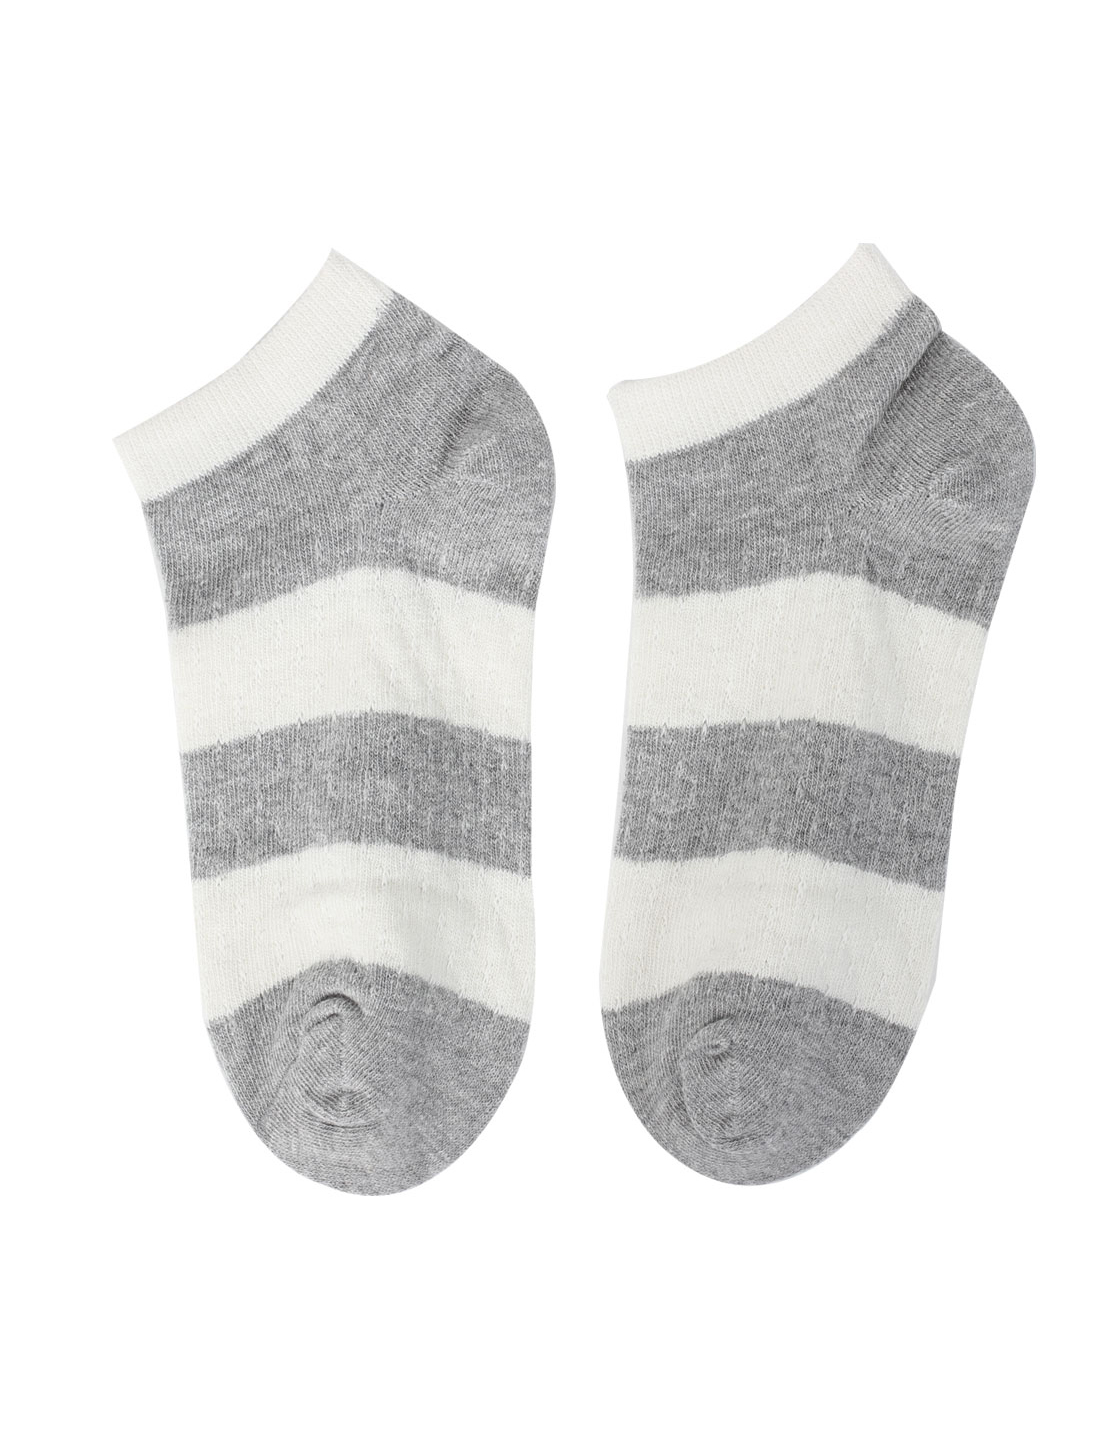 Women Knitted Stripes Pattern Elastic Cuff Short Low Cut Ankle Socks Gray Pair